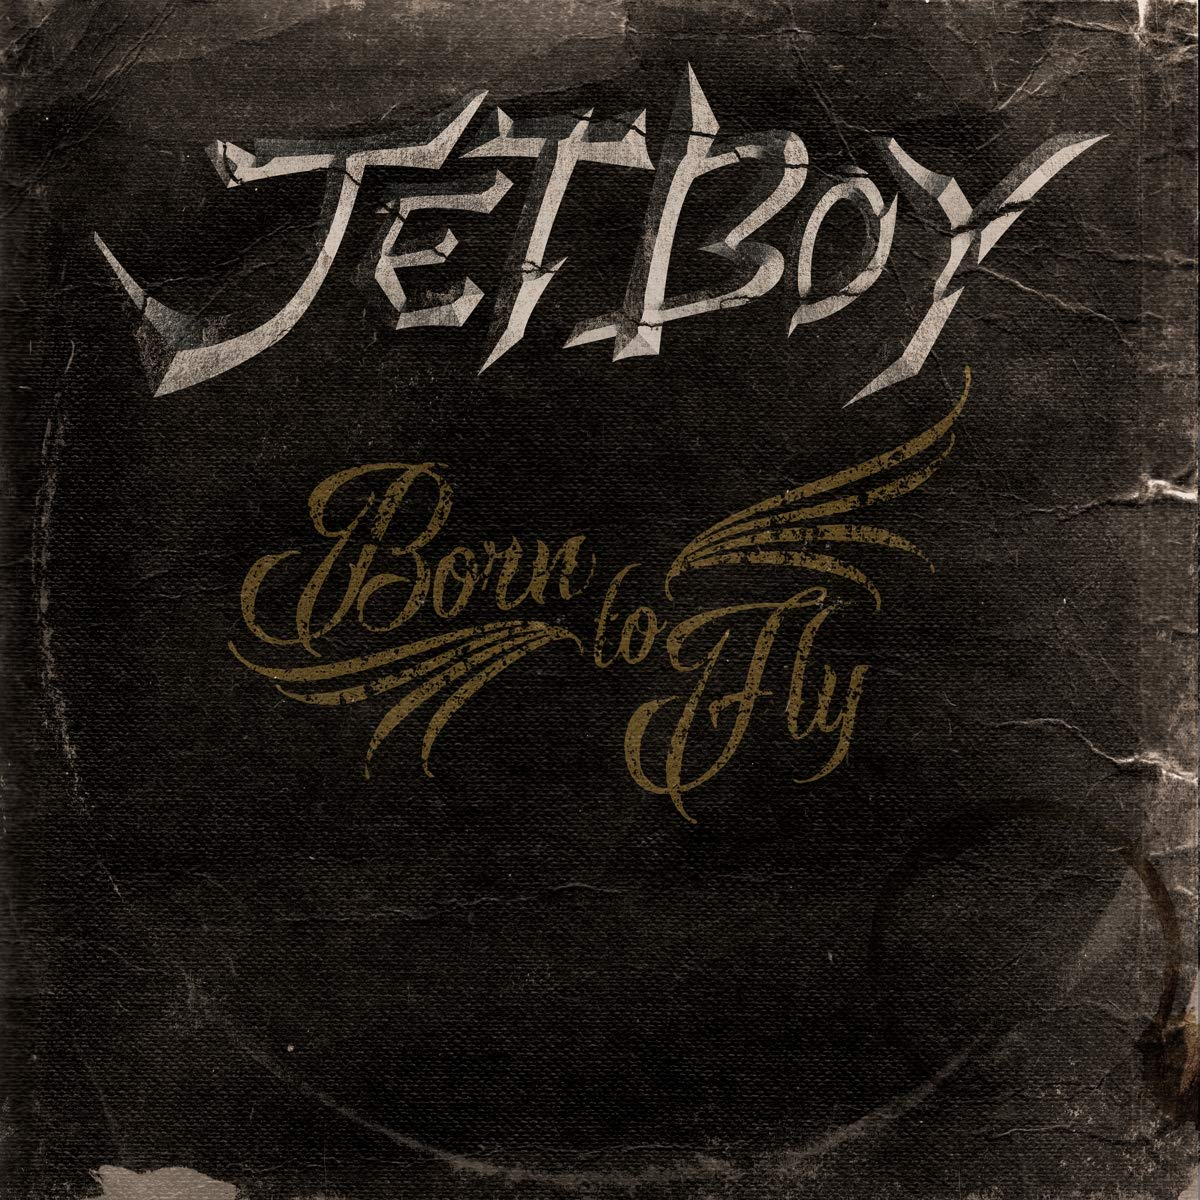 Vinilo : Jetboy - Born To Fly (Limited Edition)